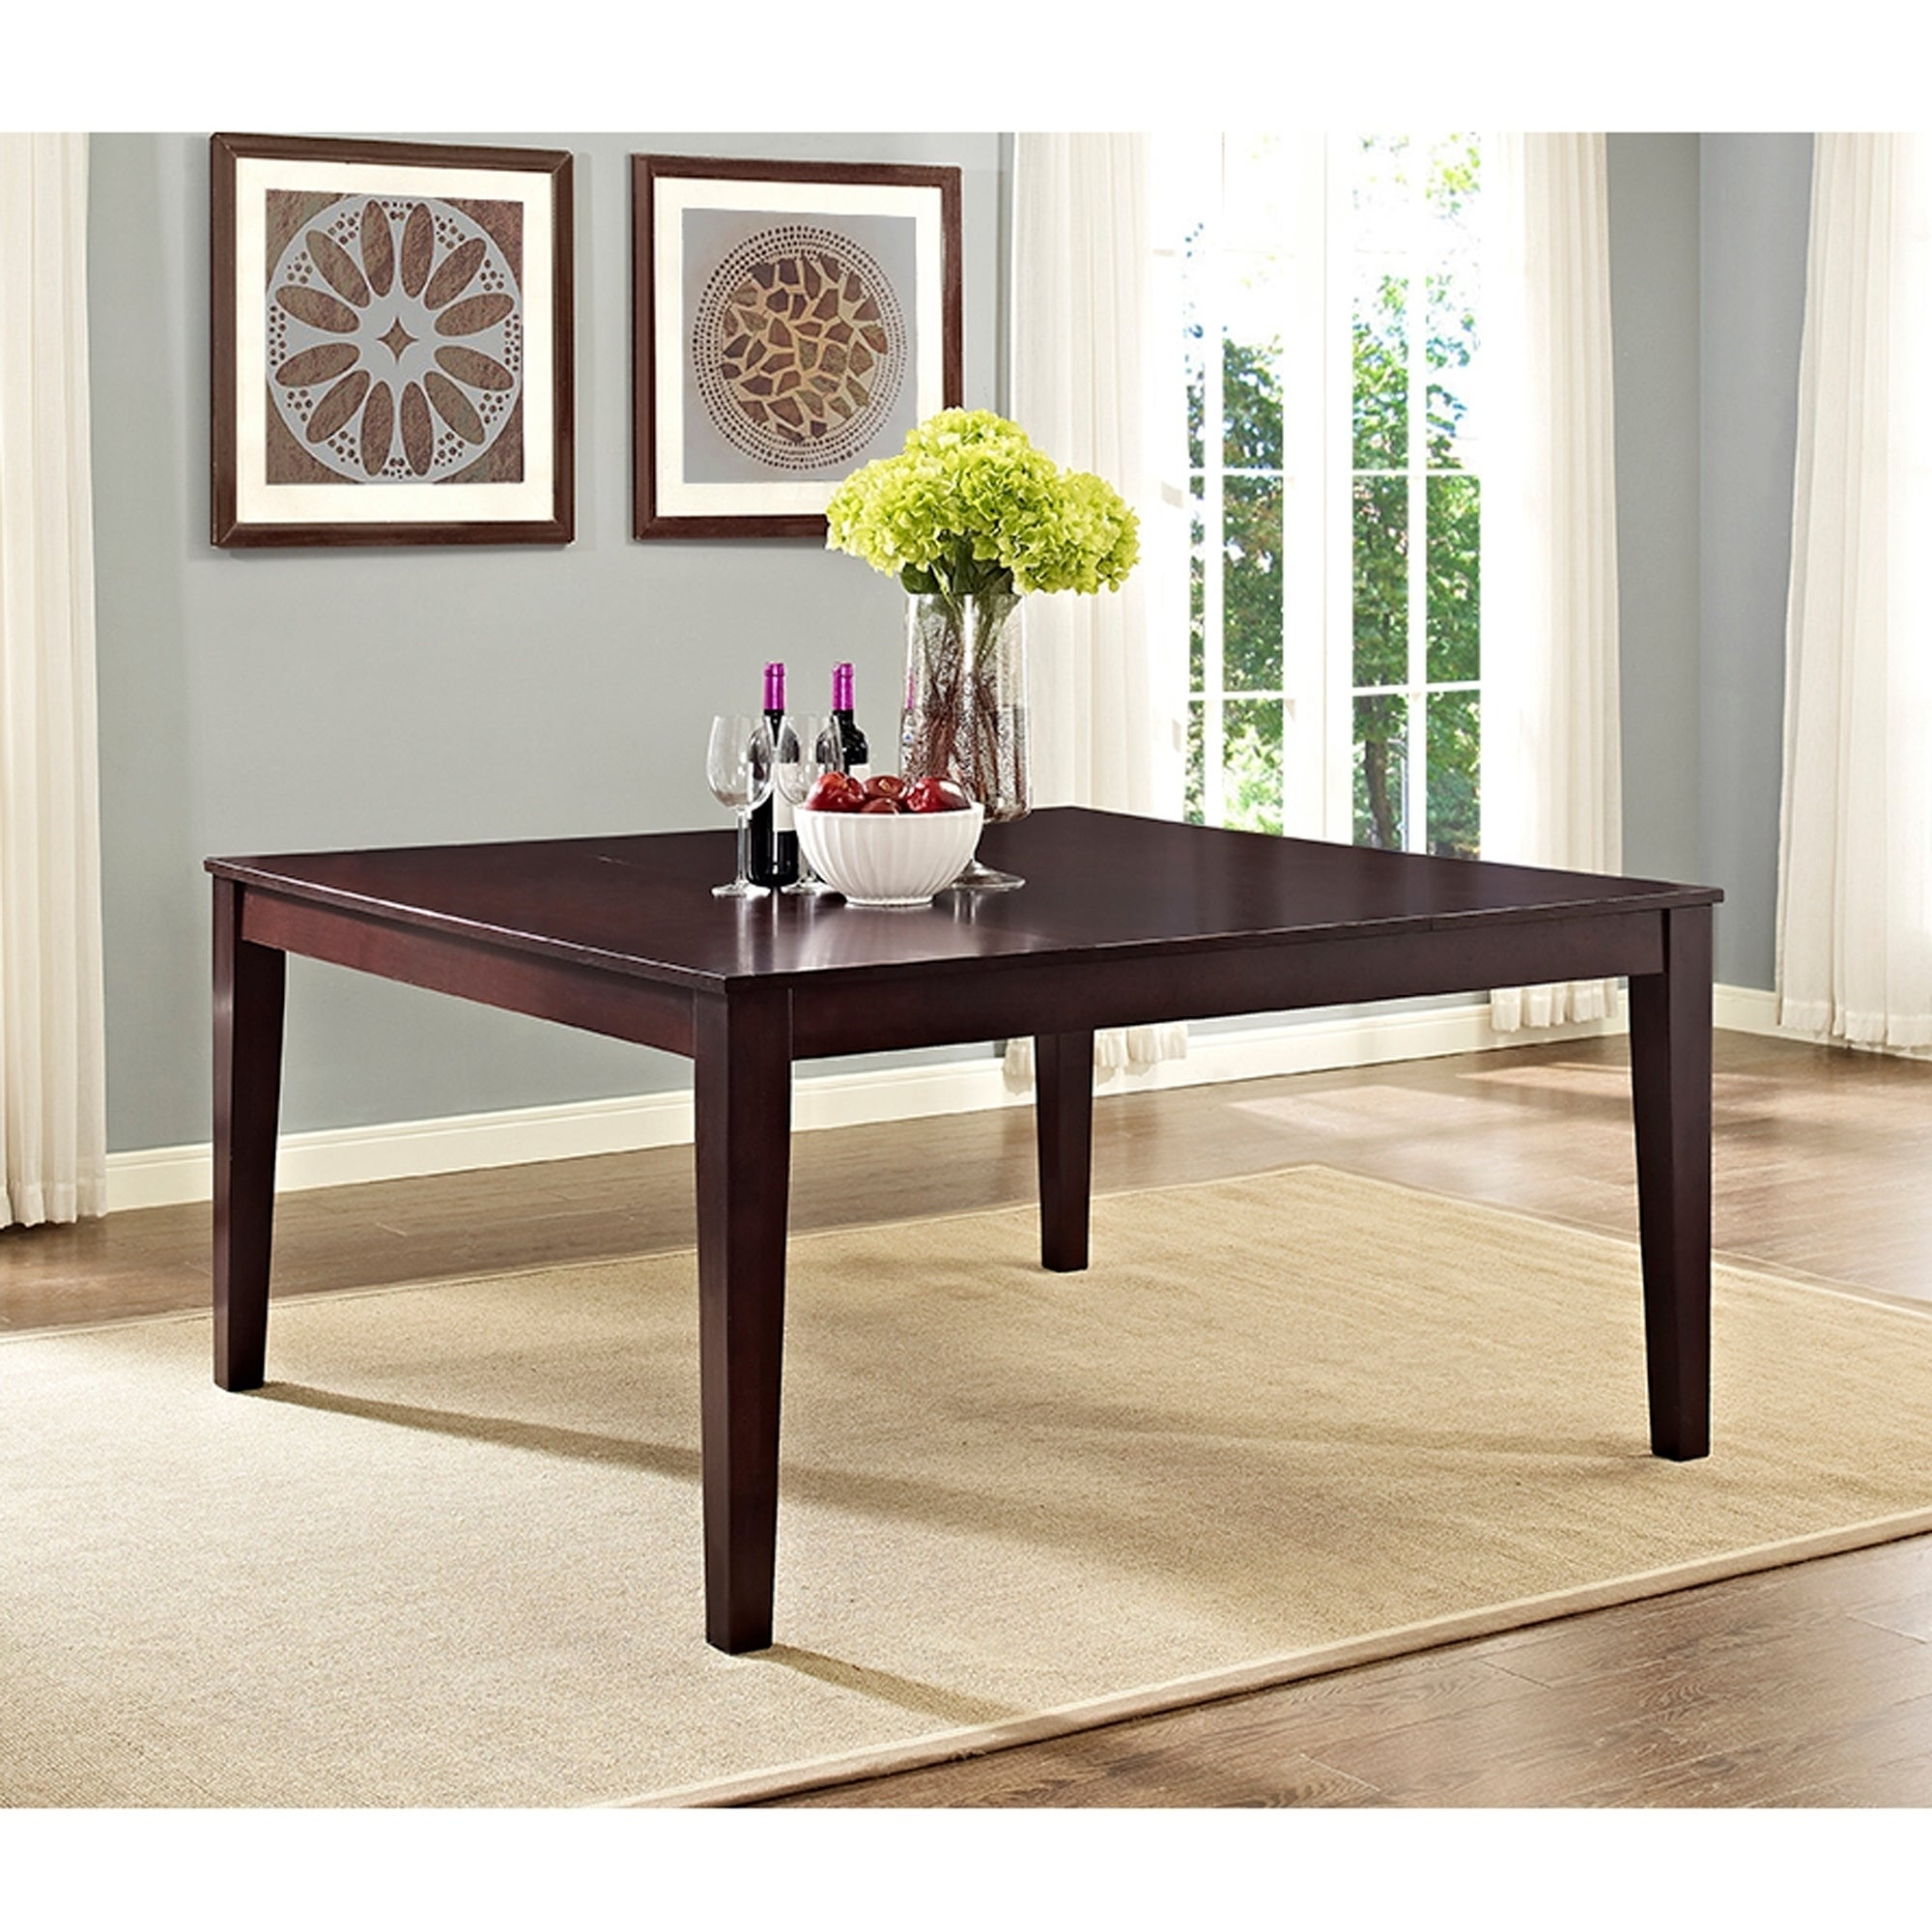 60 Square Dining Table Cuccino X 30h